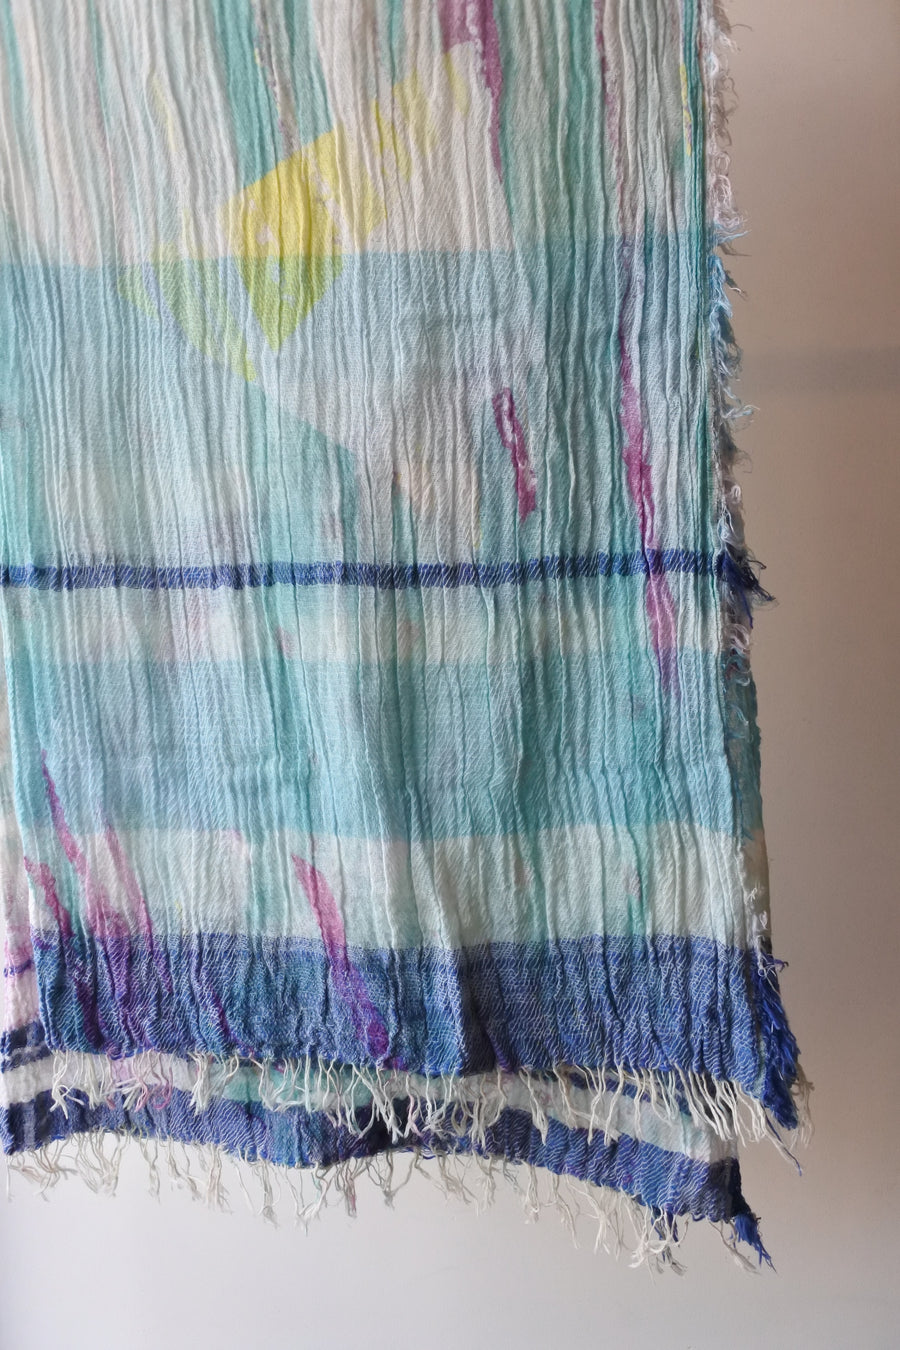 tamaki niime | print shawl BIG cotton